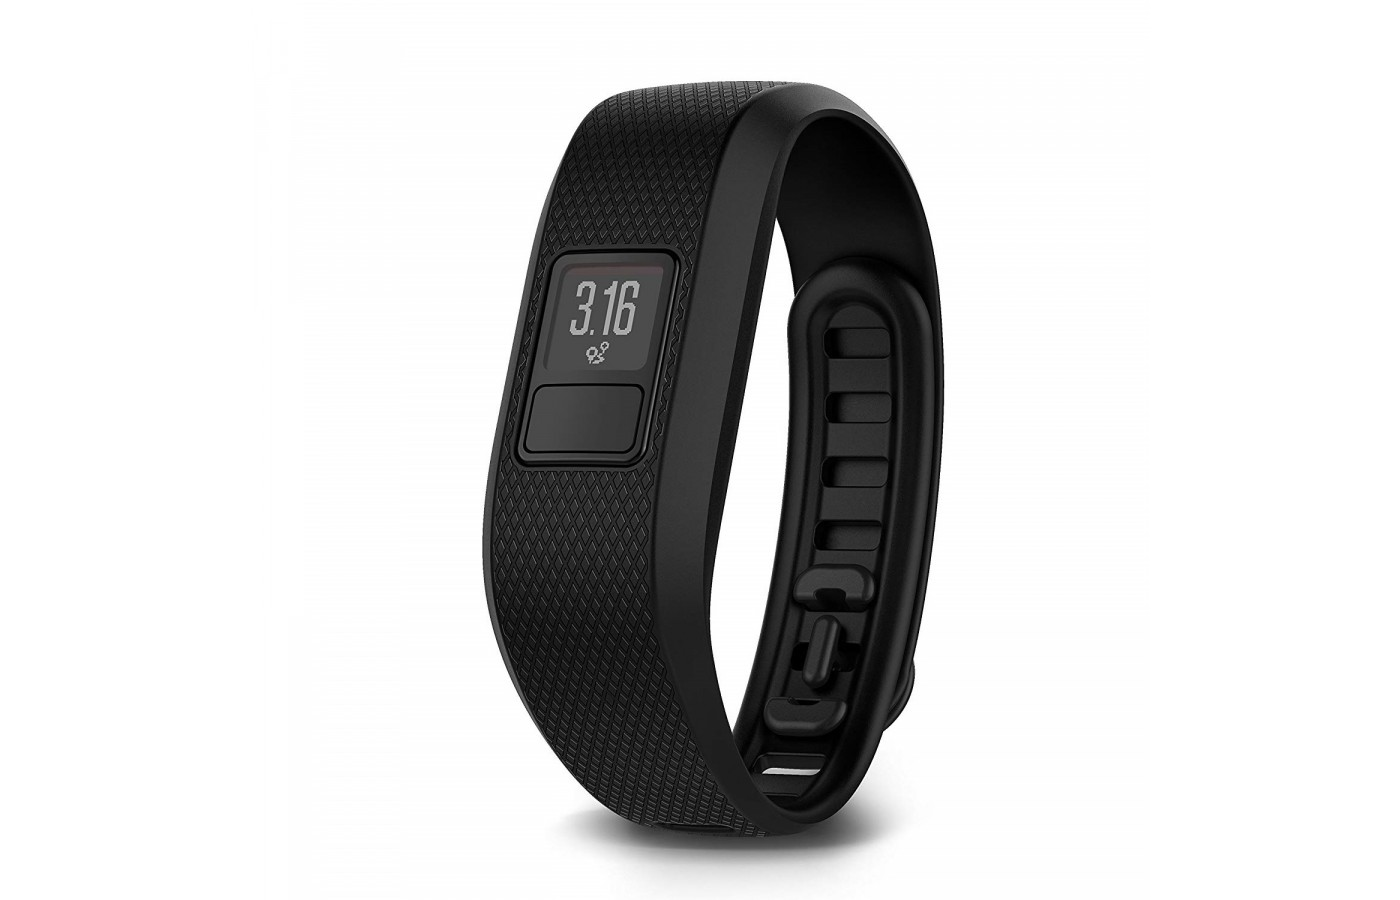 The Garmin Vivofit 3 knows how you move allowing you to identify which activity is being performed at a particular time.